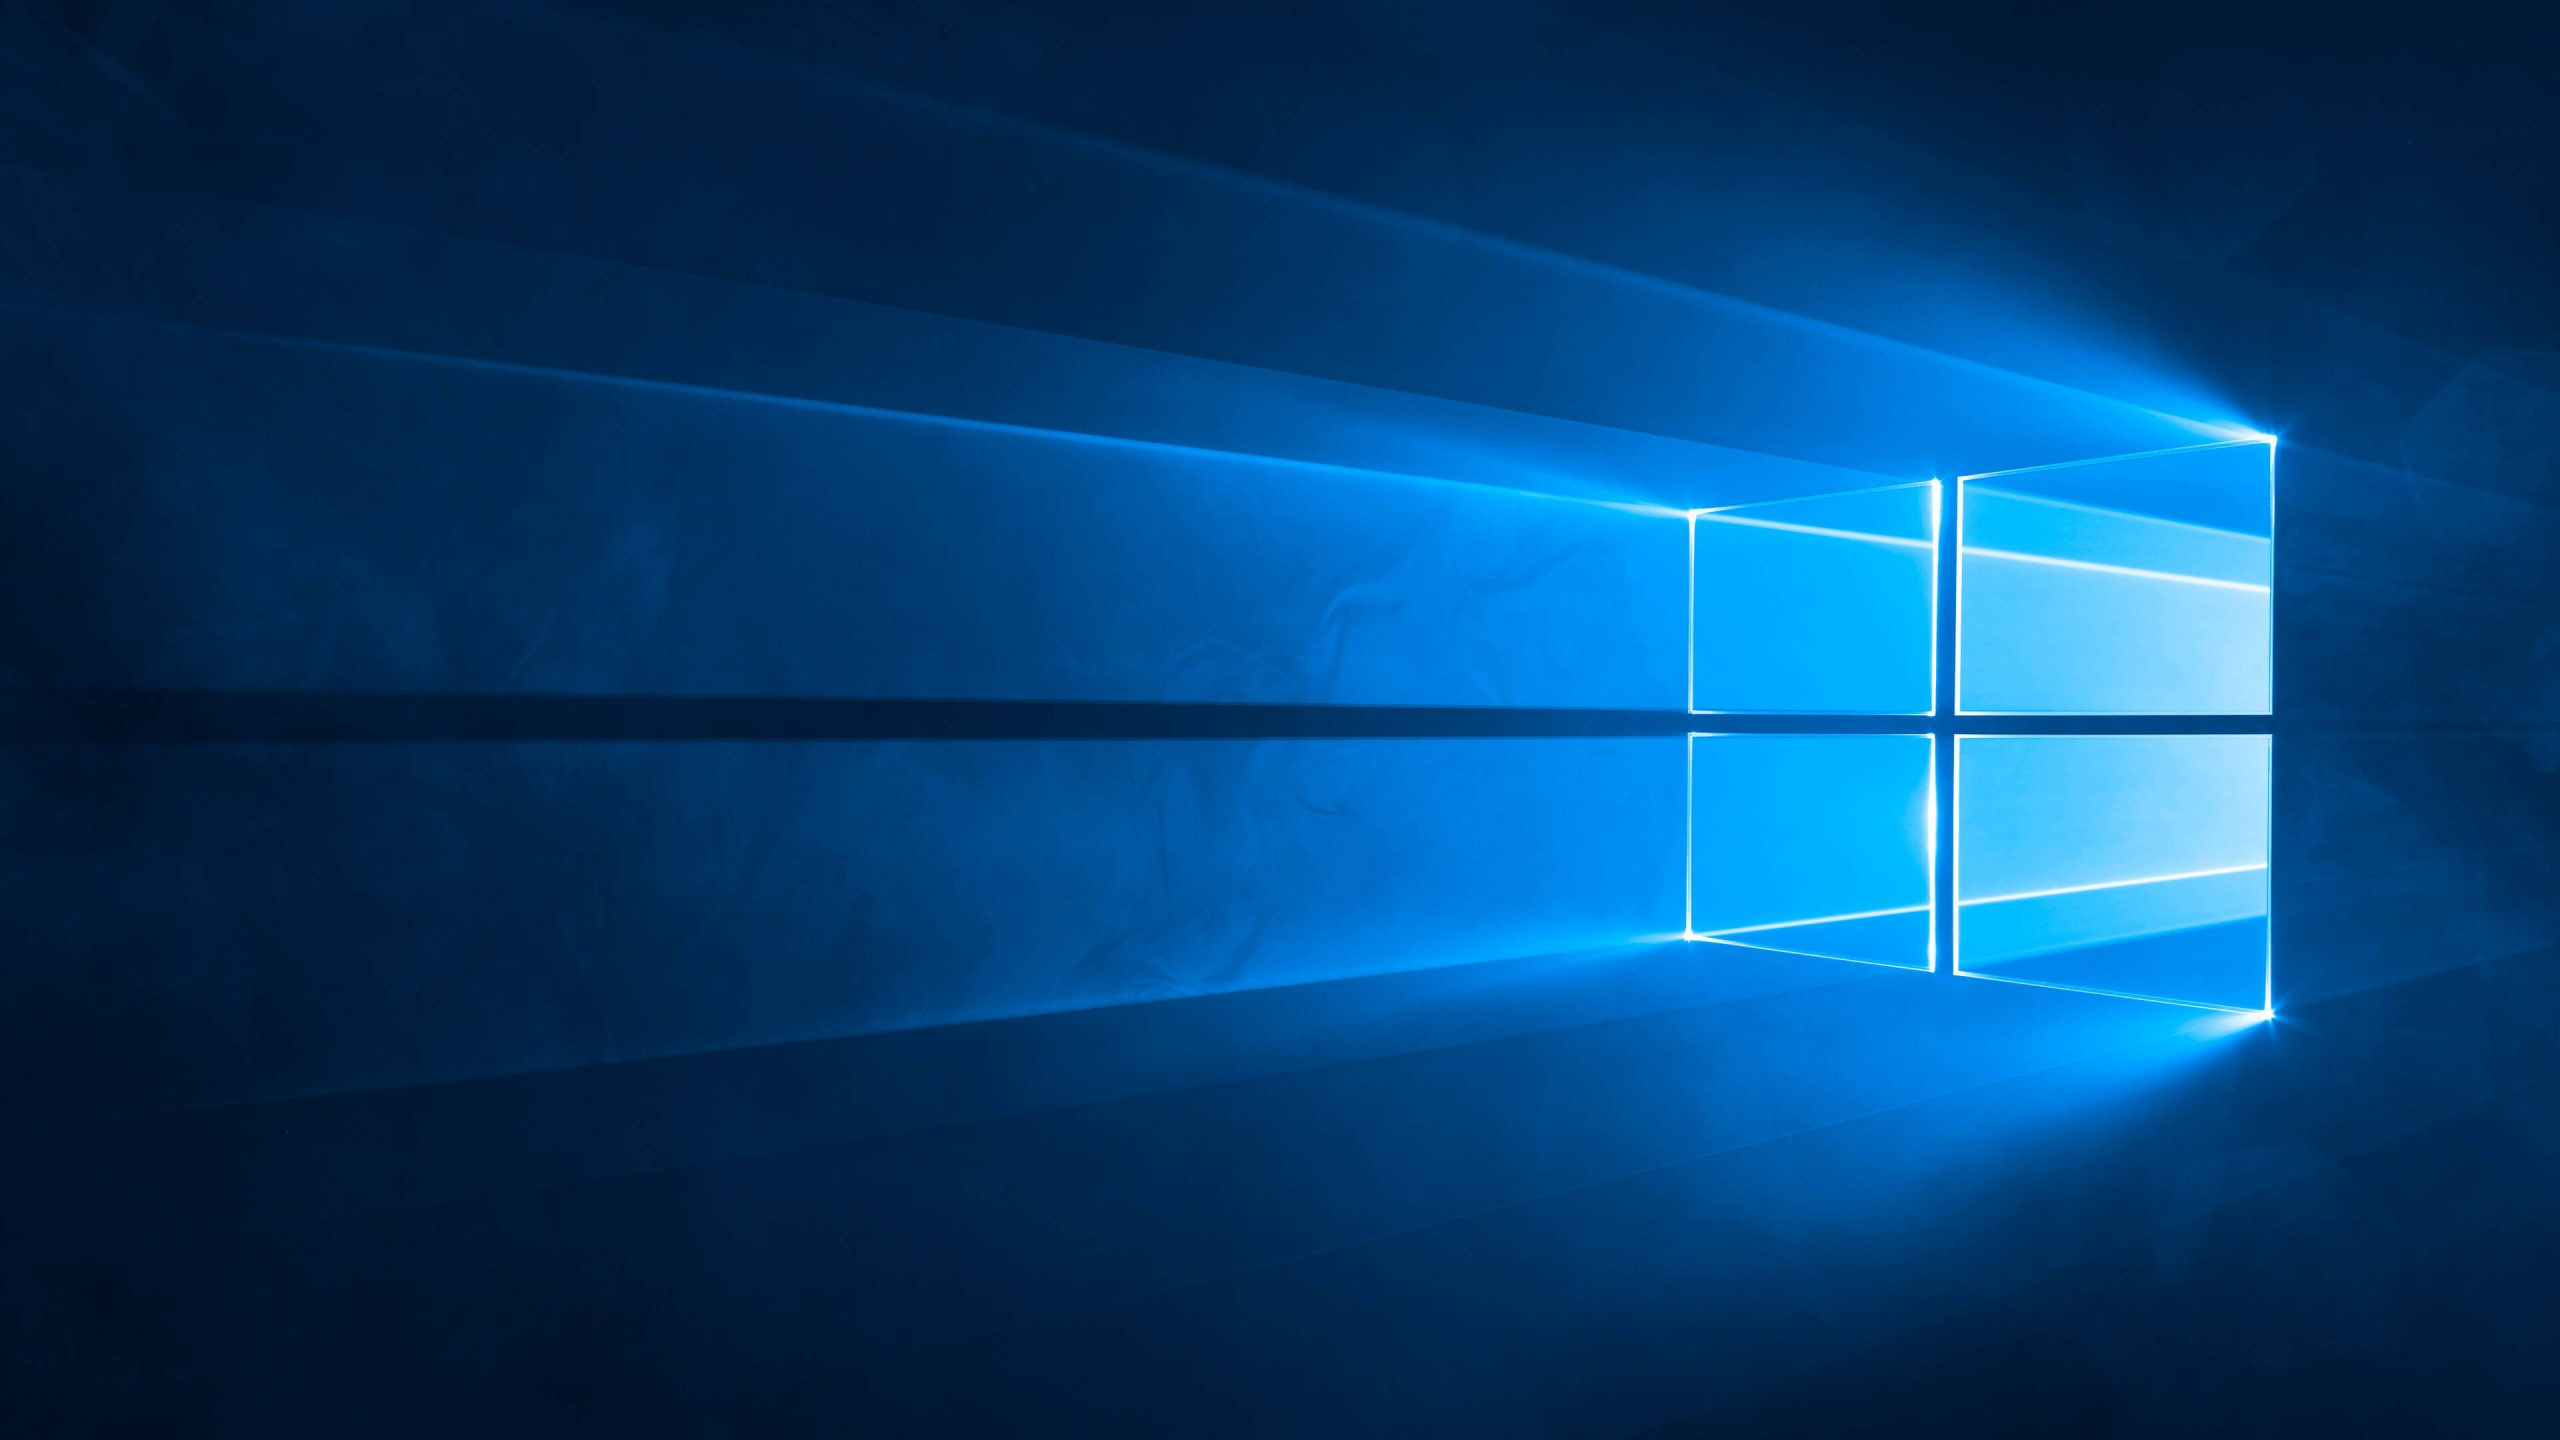 Windows 10 Official HD wallpaper for 2560 x 1440   HDwallpapersnet 2560x1440